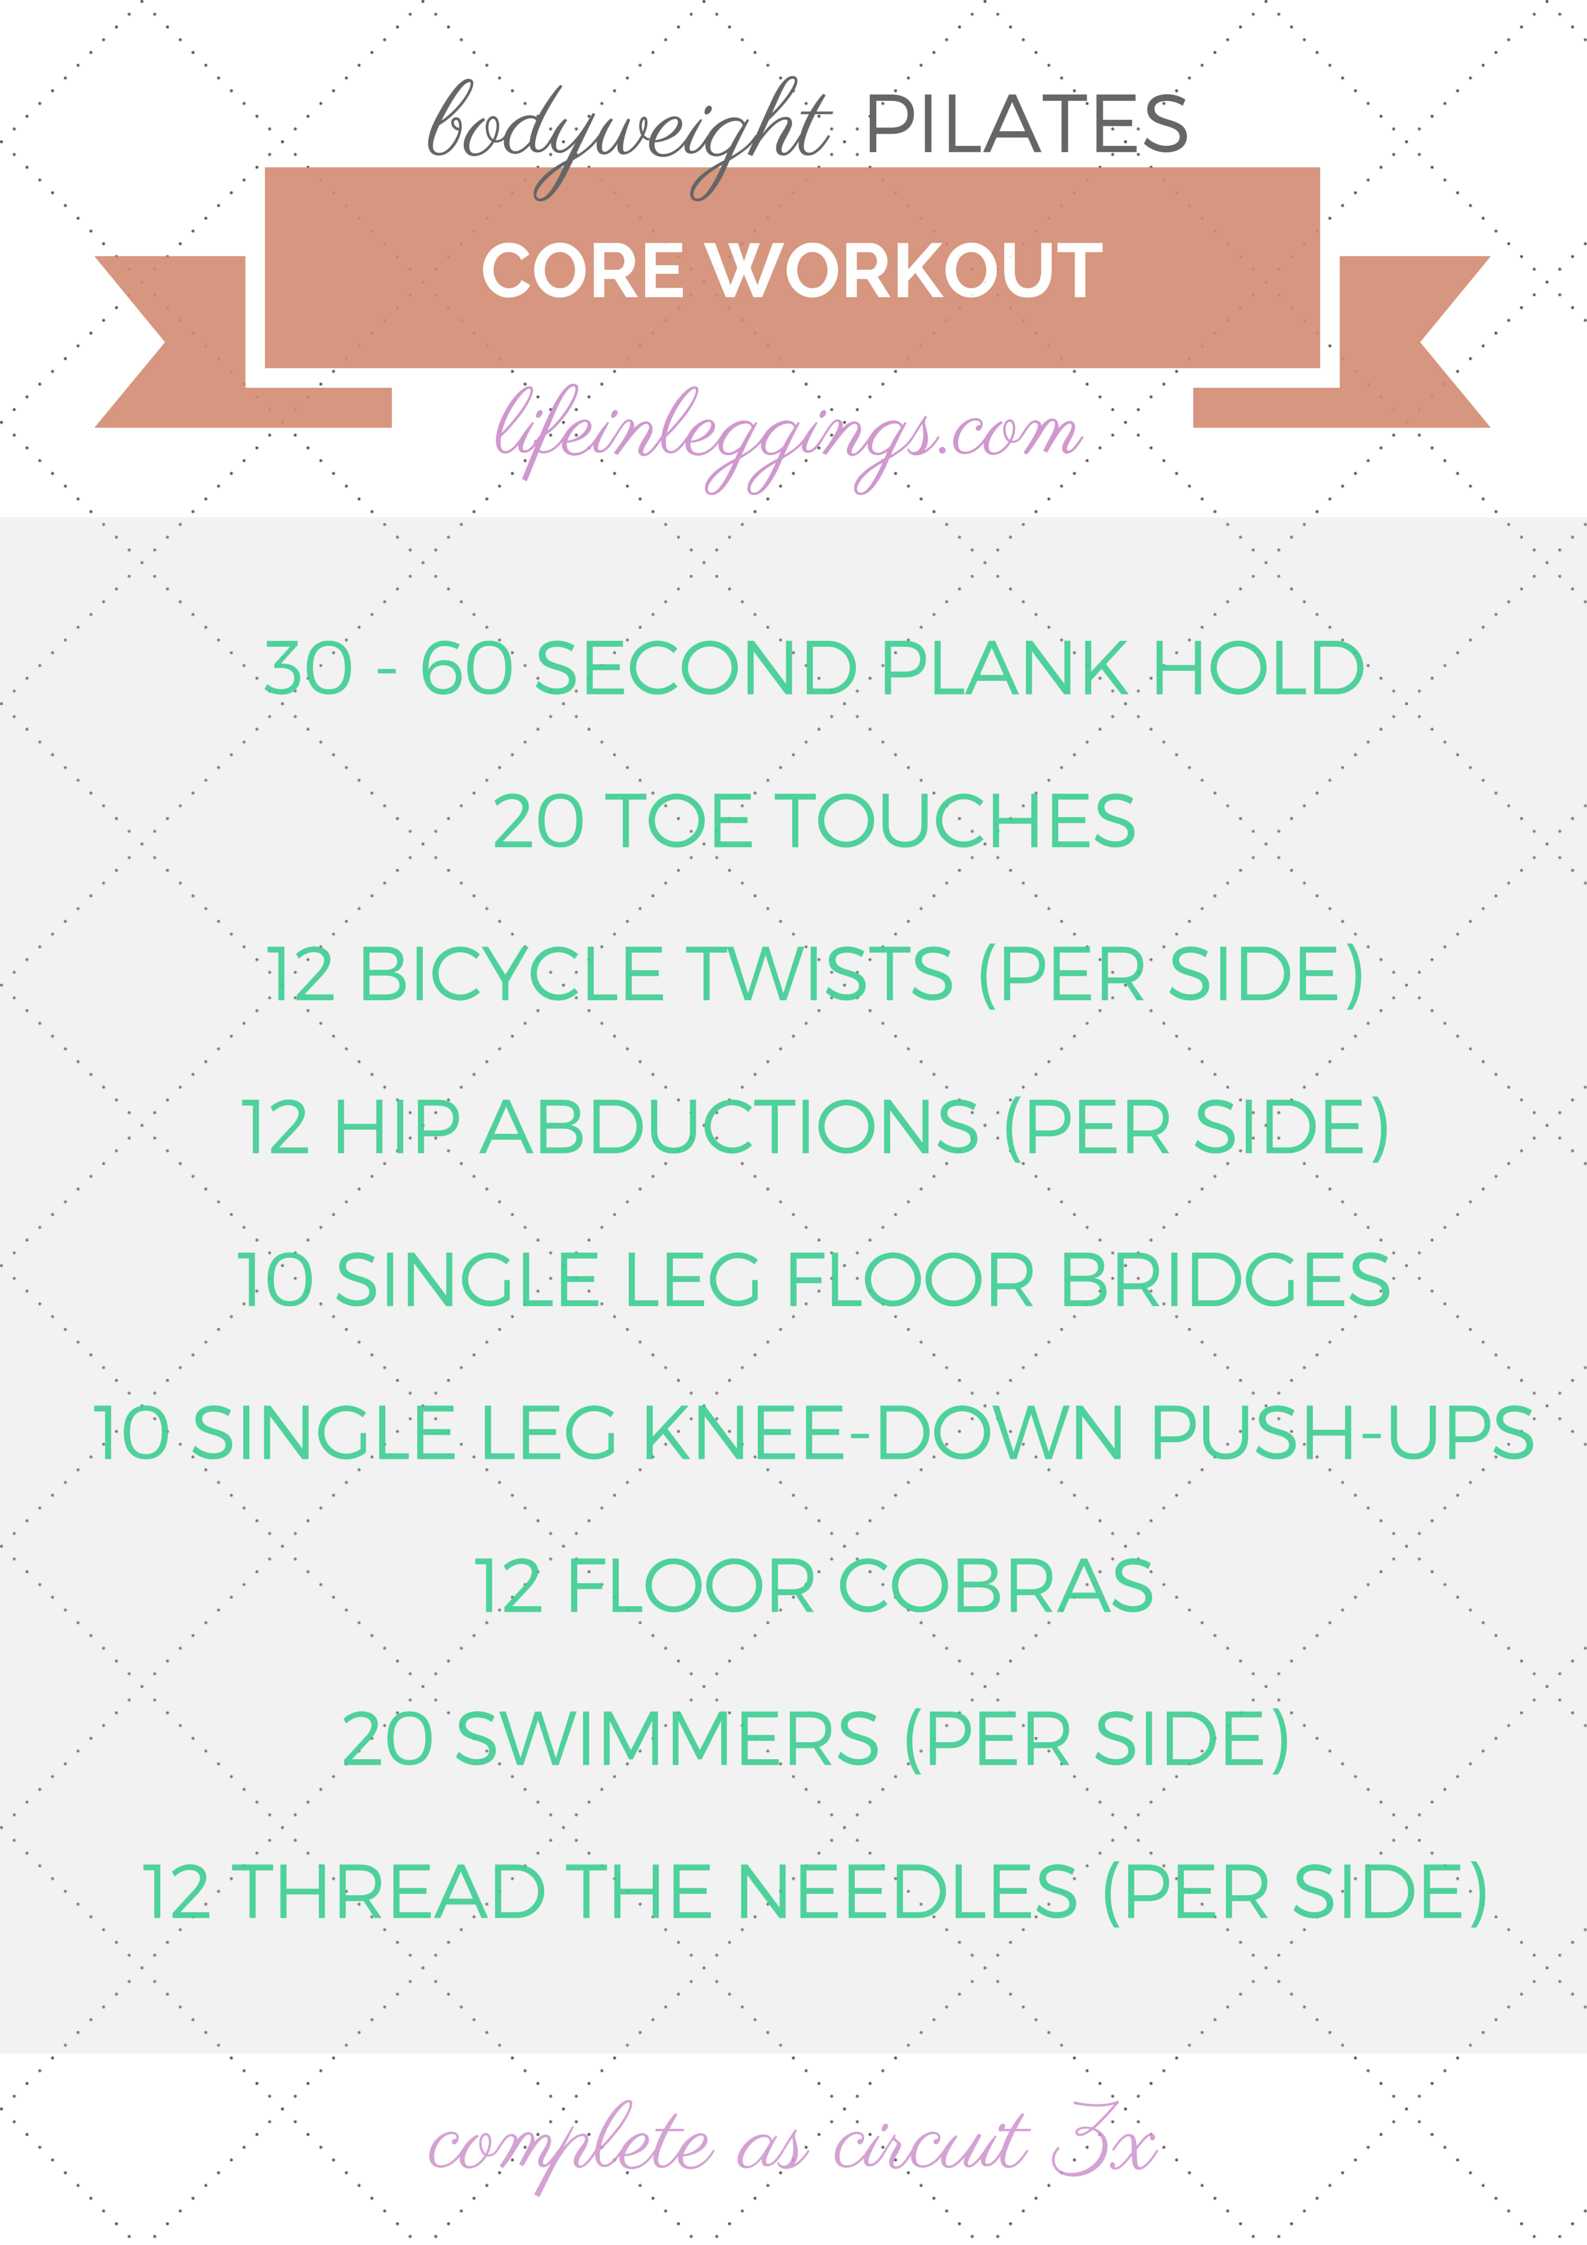 Bodyweight Pilates Core Workout